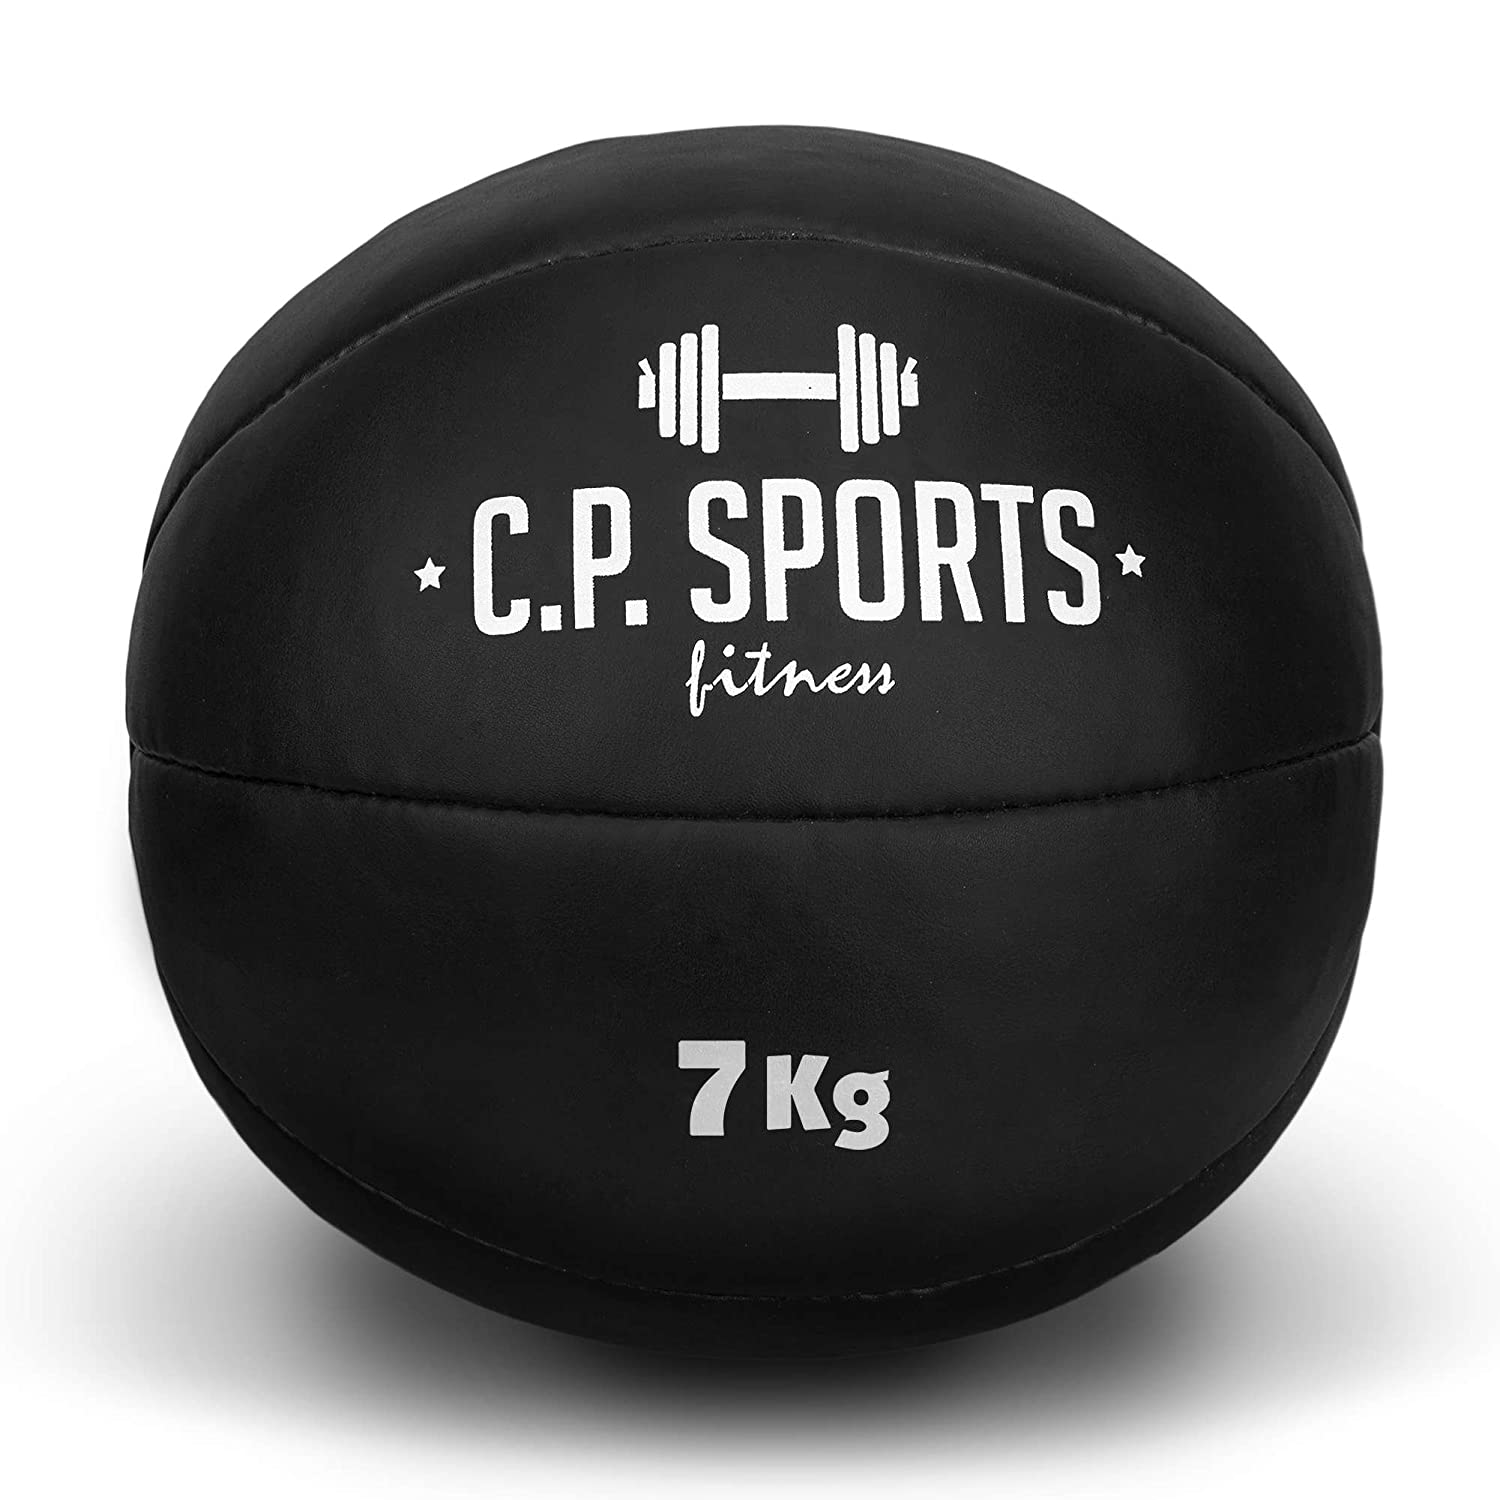 C.P. Sports - Balón Medicinal (para Crossfit, Disponible en Pesos ...